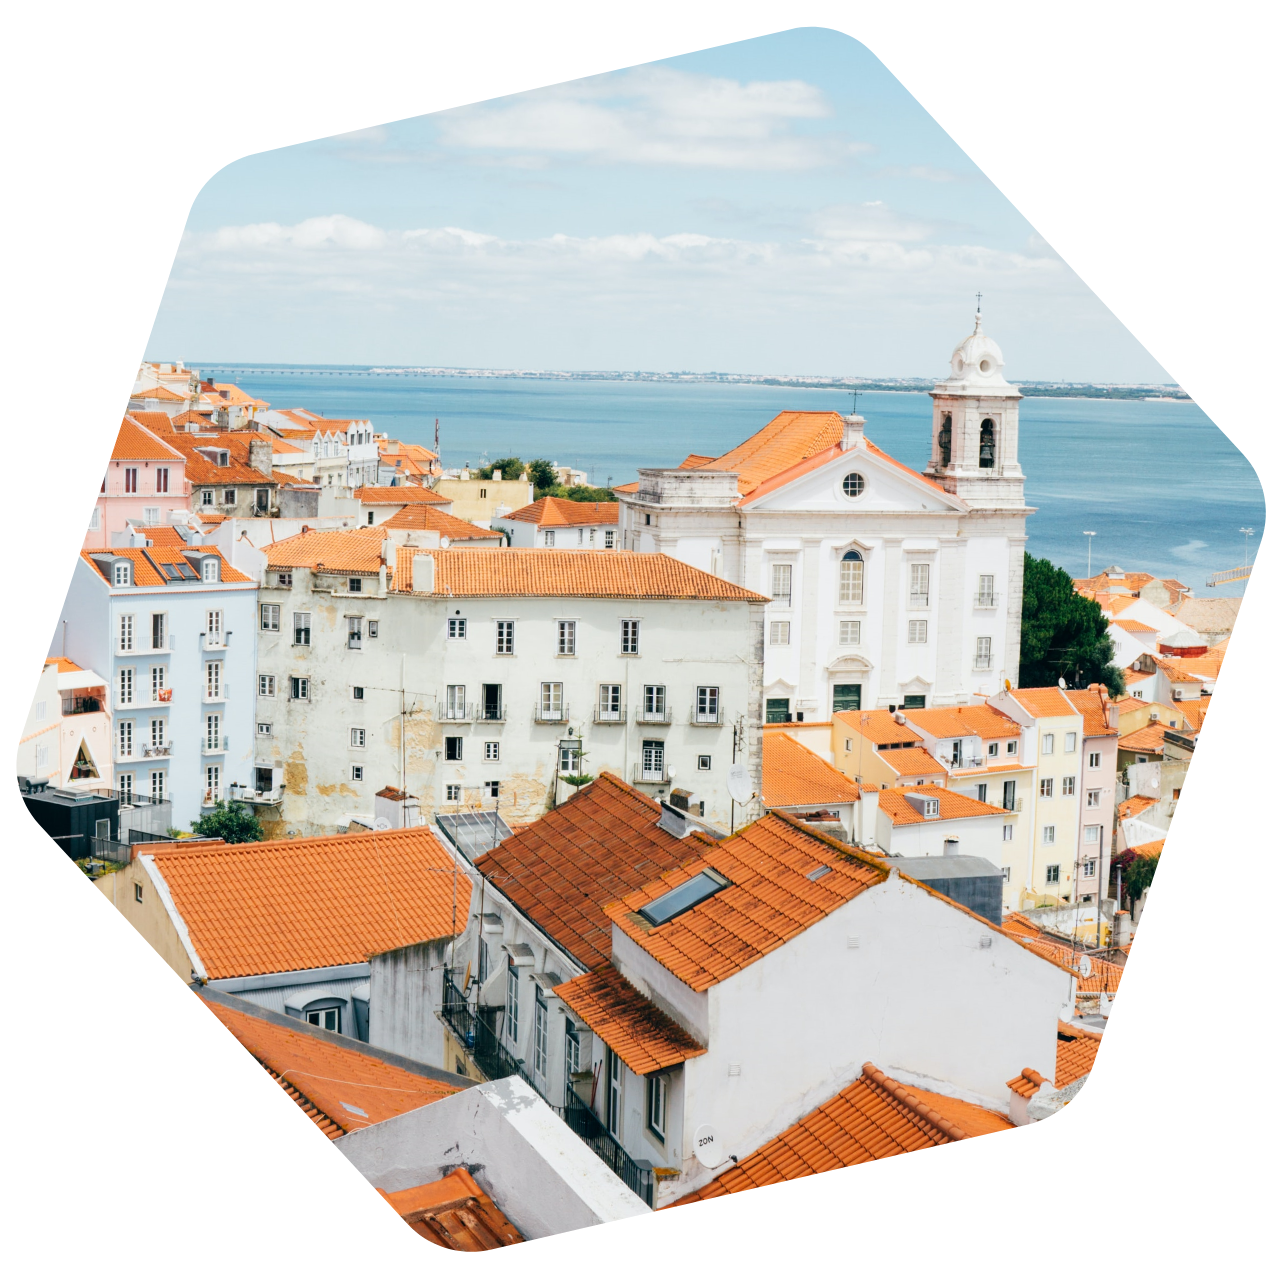 Portugal city image